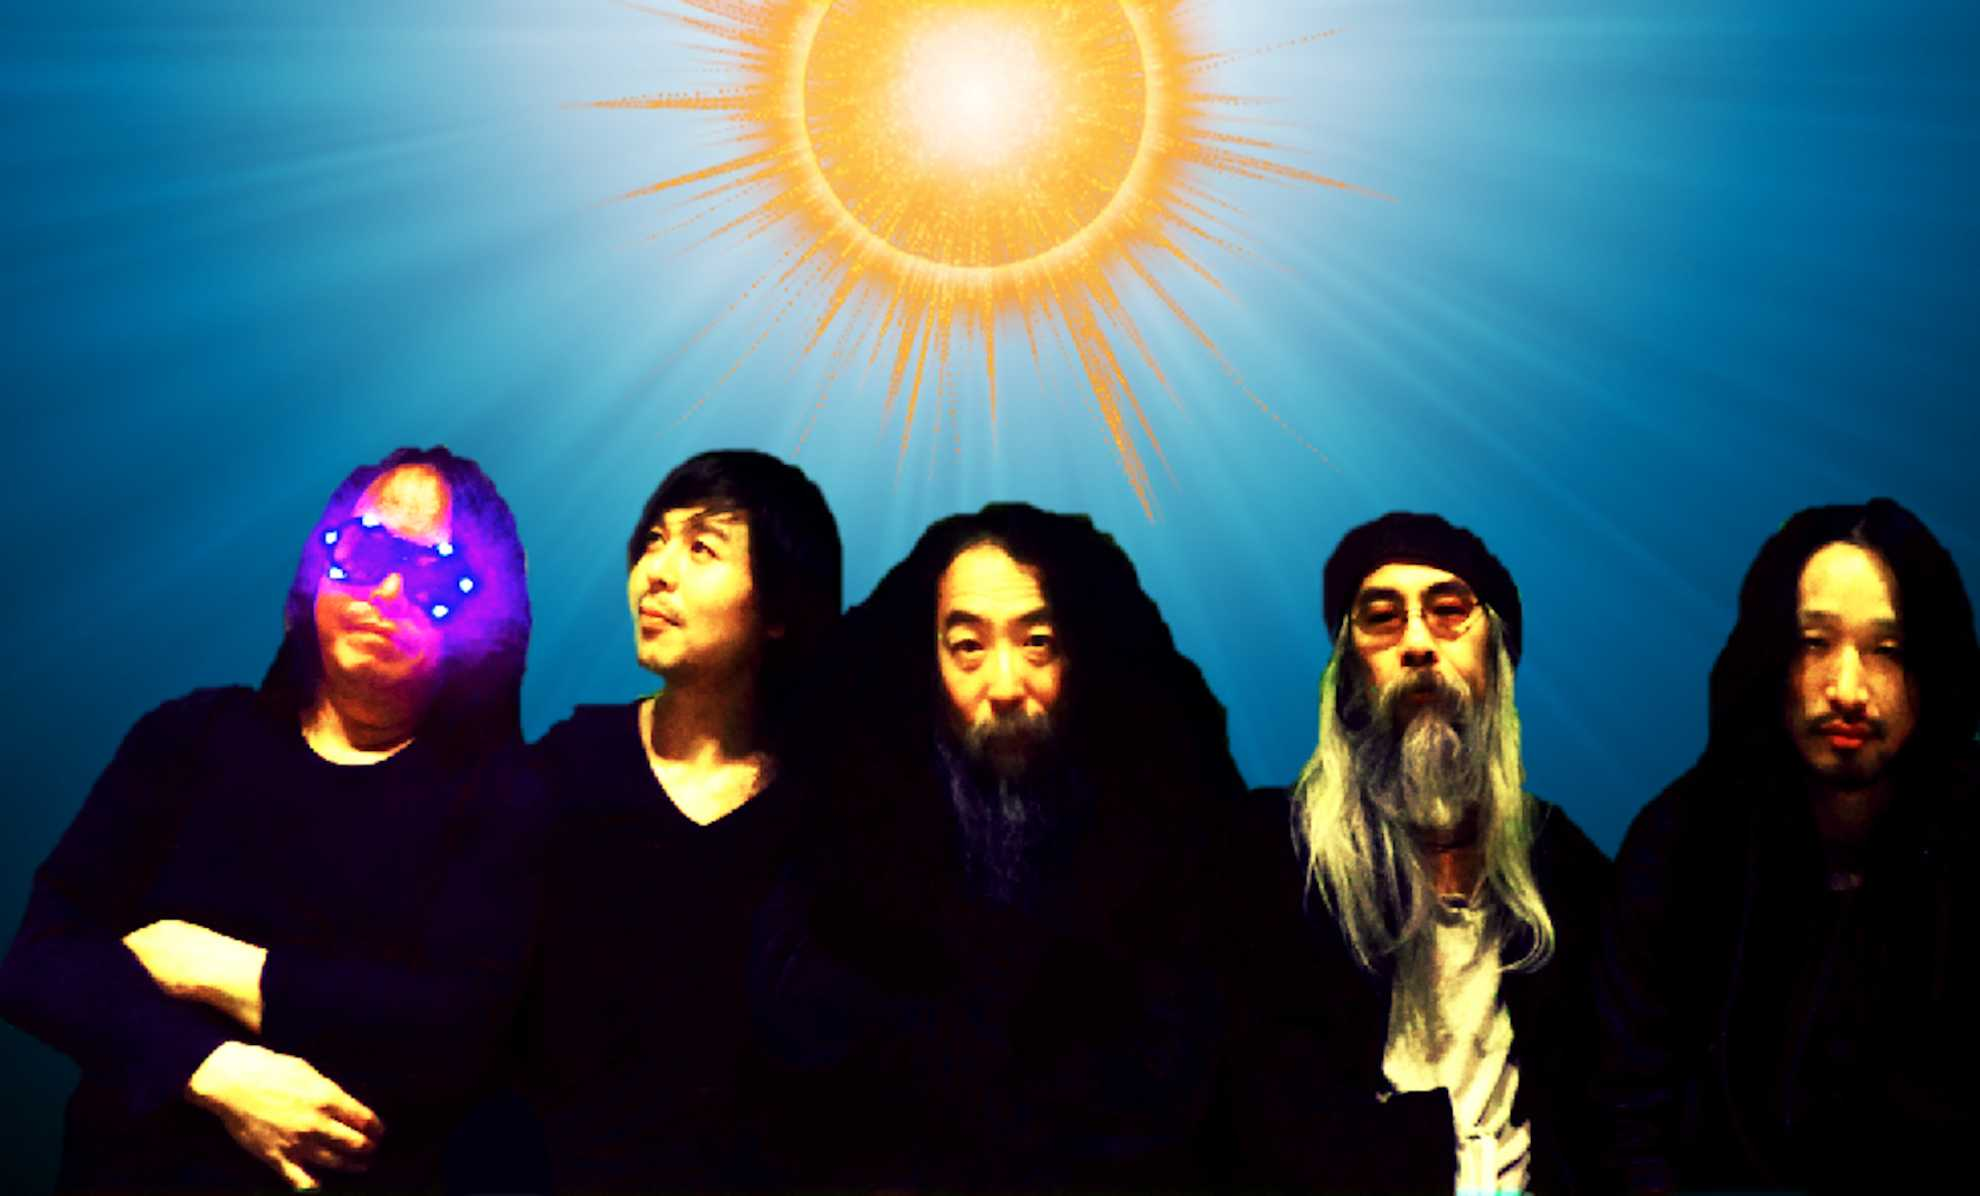 Οι θρυλικοί Acid Mothers Temple & The Melting Paraiso UFO στην Αθήνα